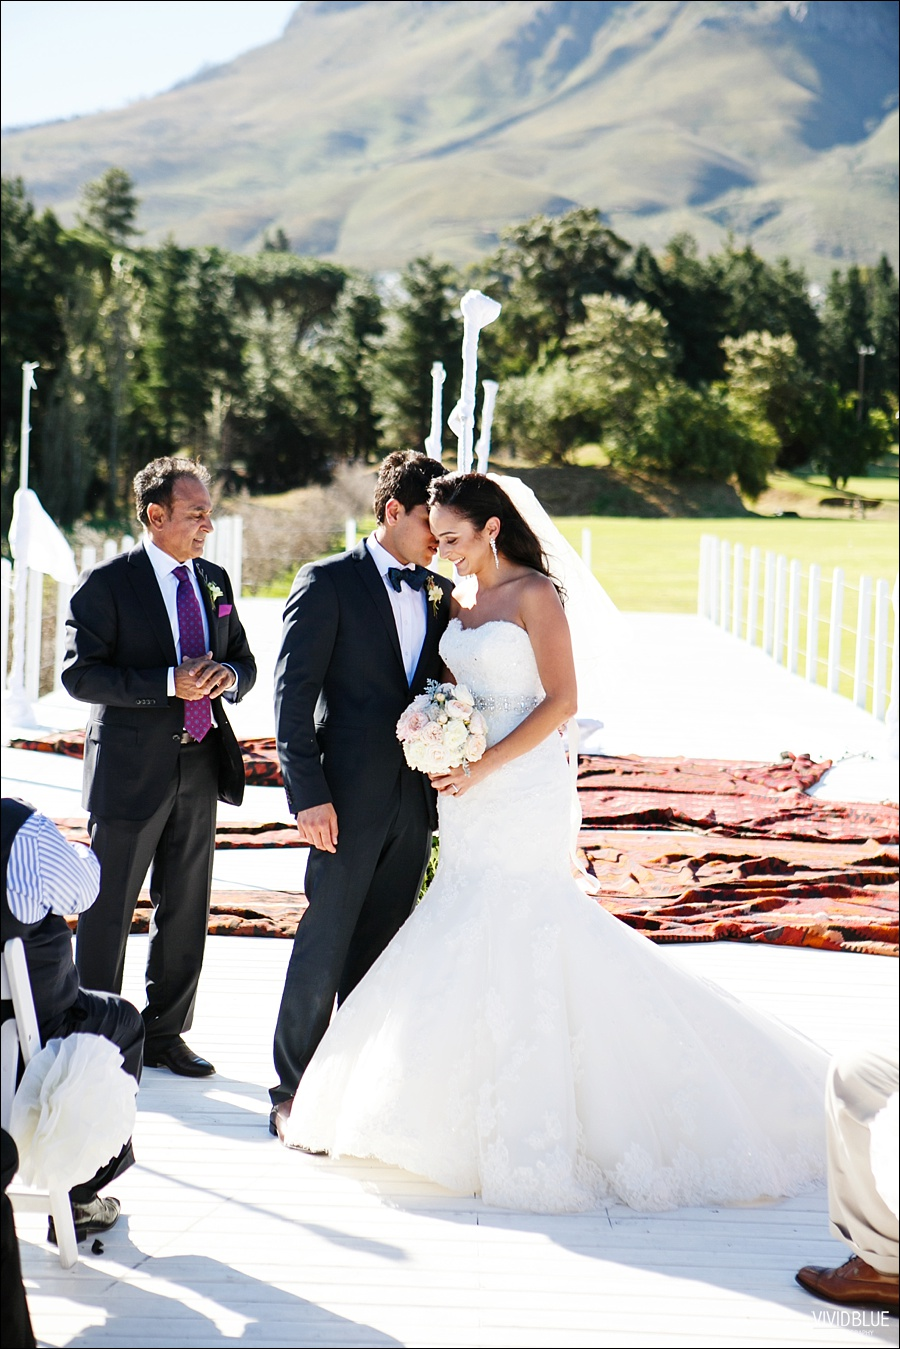 VIVIDBLUE-Ahmed_limia_wedding_lourensford_wedding_conconcepts_stylish036